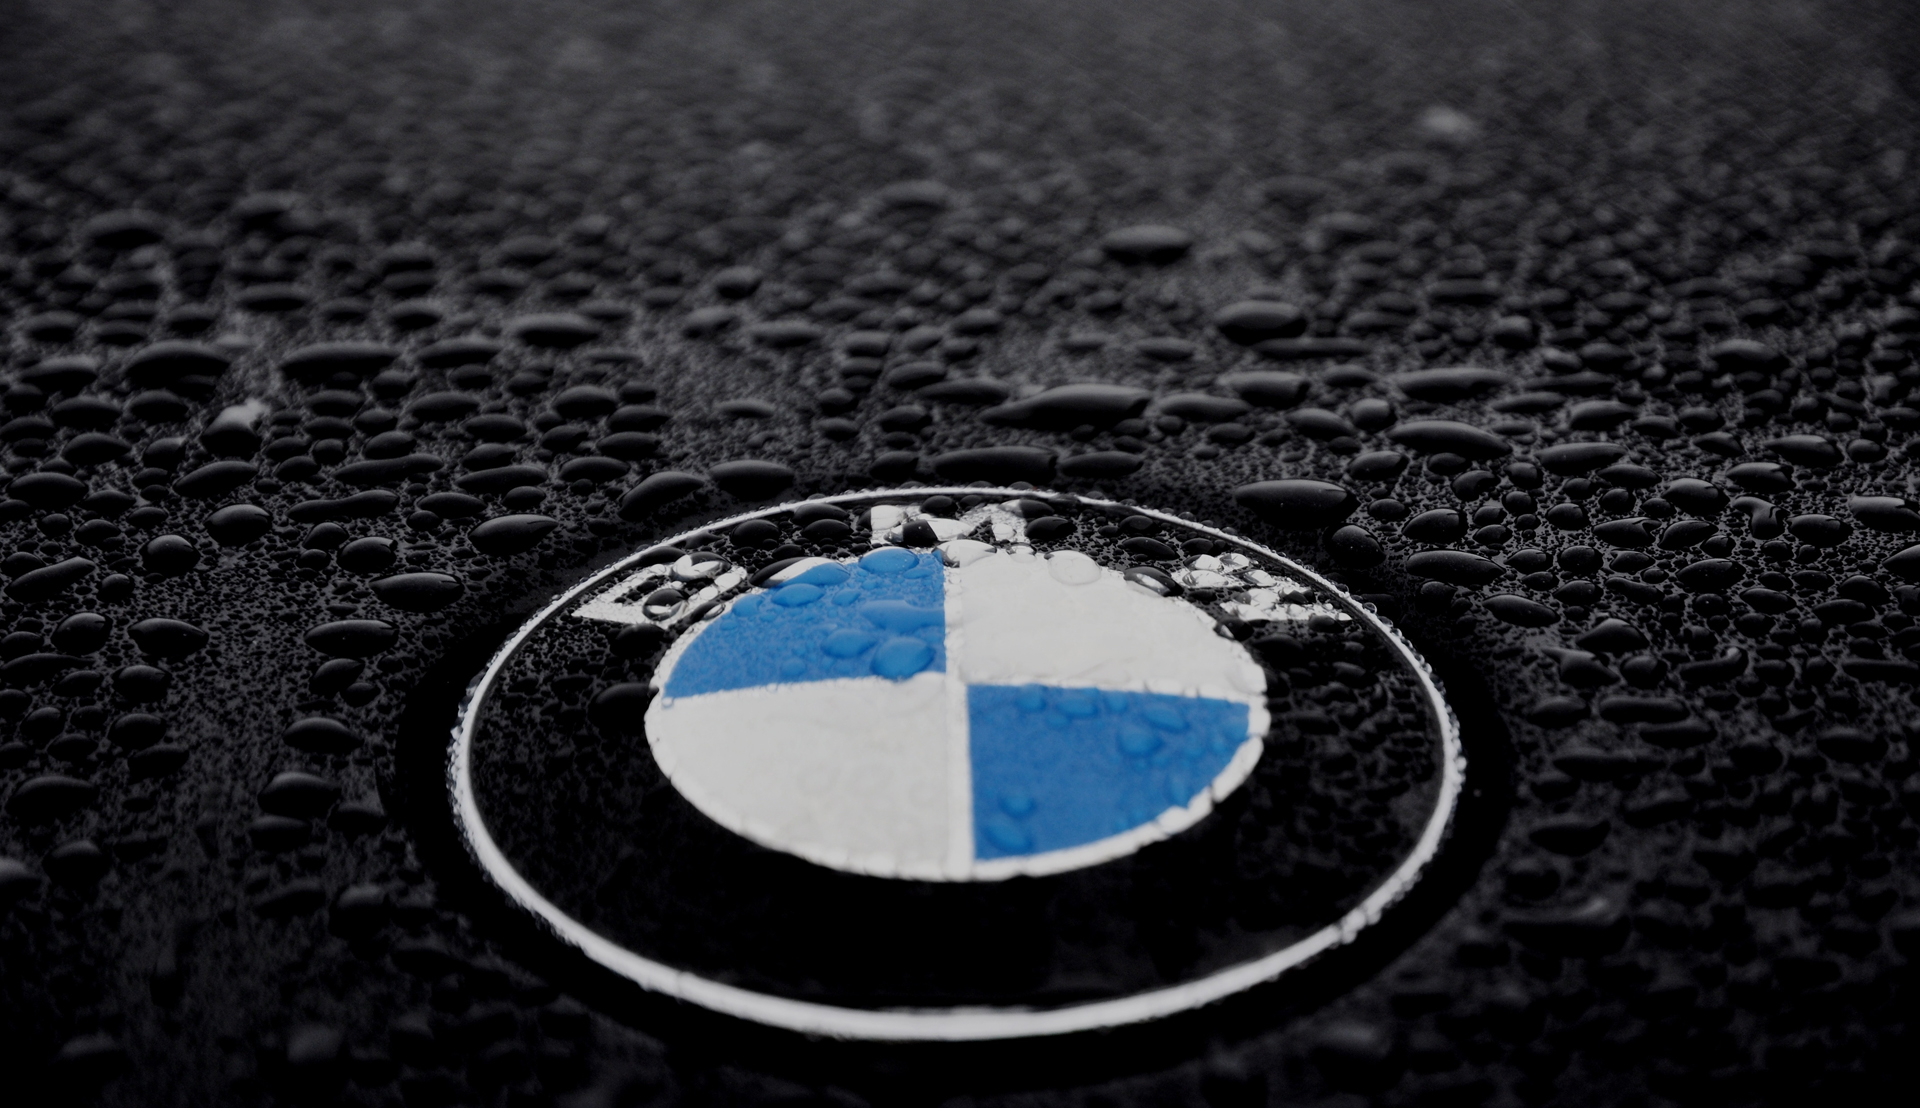 bmw logo desktop hd wallpaper 58882